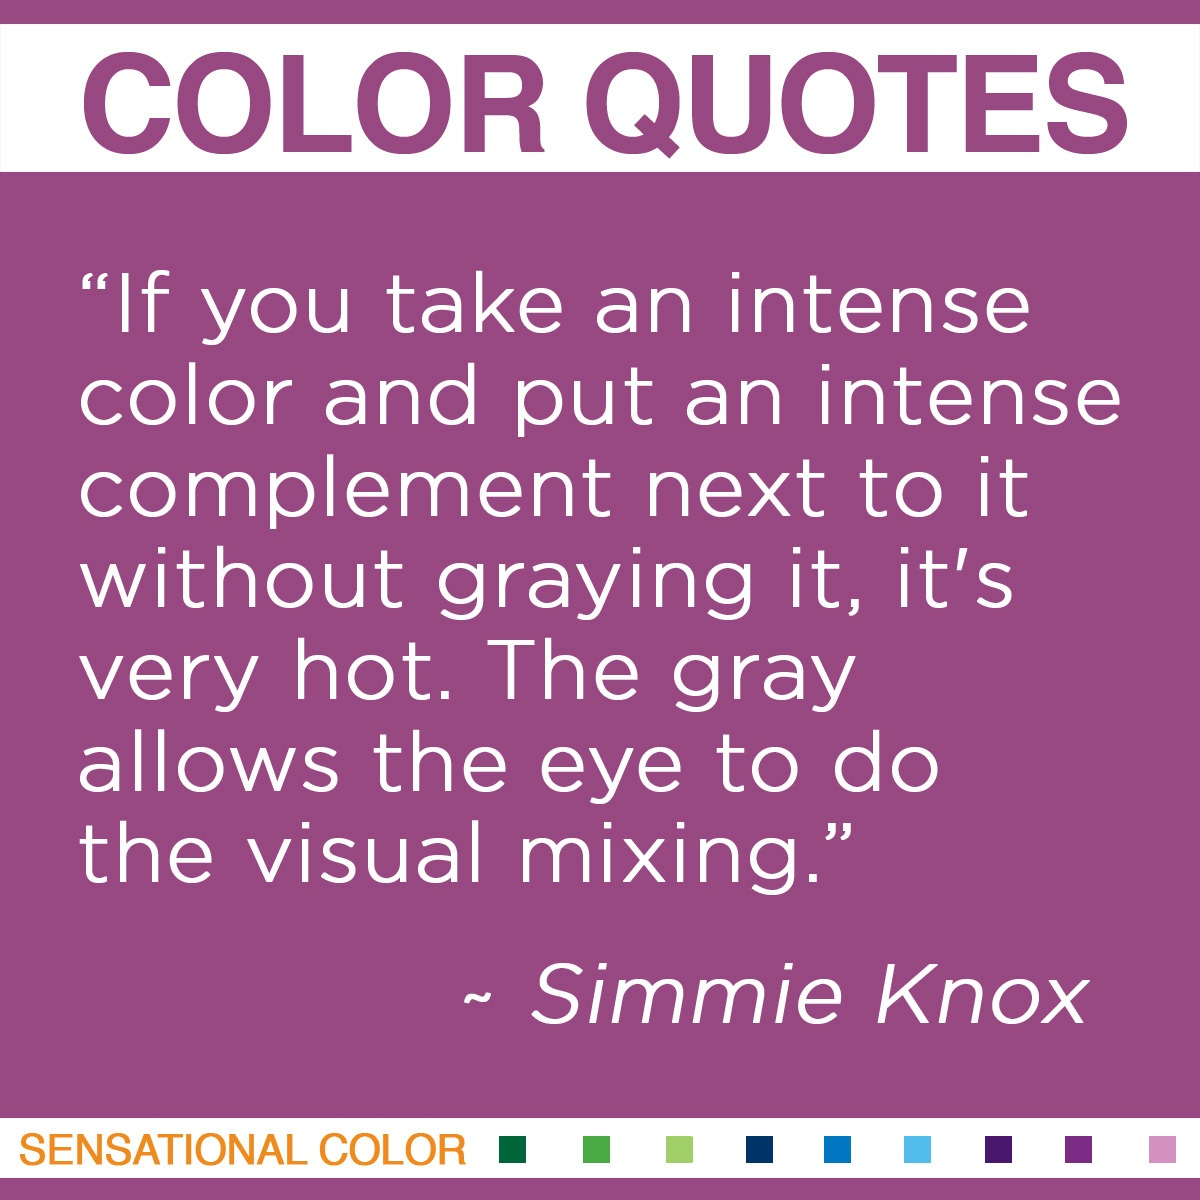 """""""If you take an intense color and put an intense complement next to it without graying it, it's very hot. The gray allows the eye to do the visual mixing."""" - Simmie Knox"""